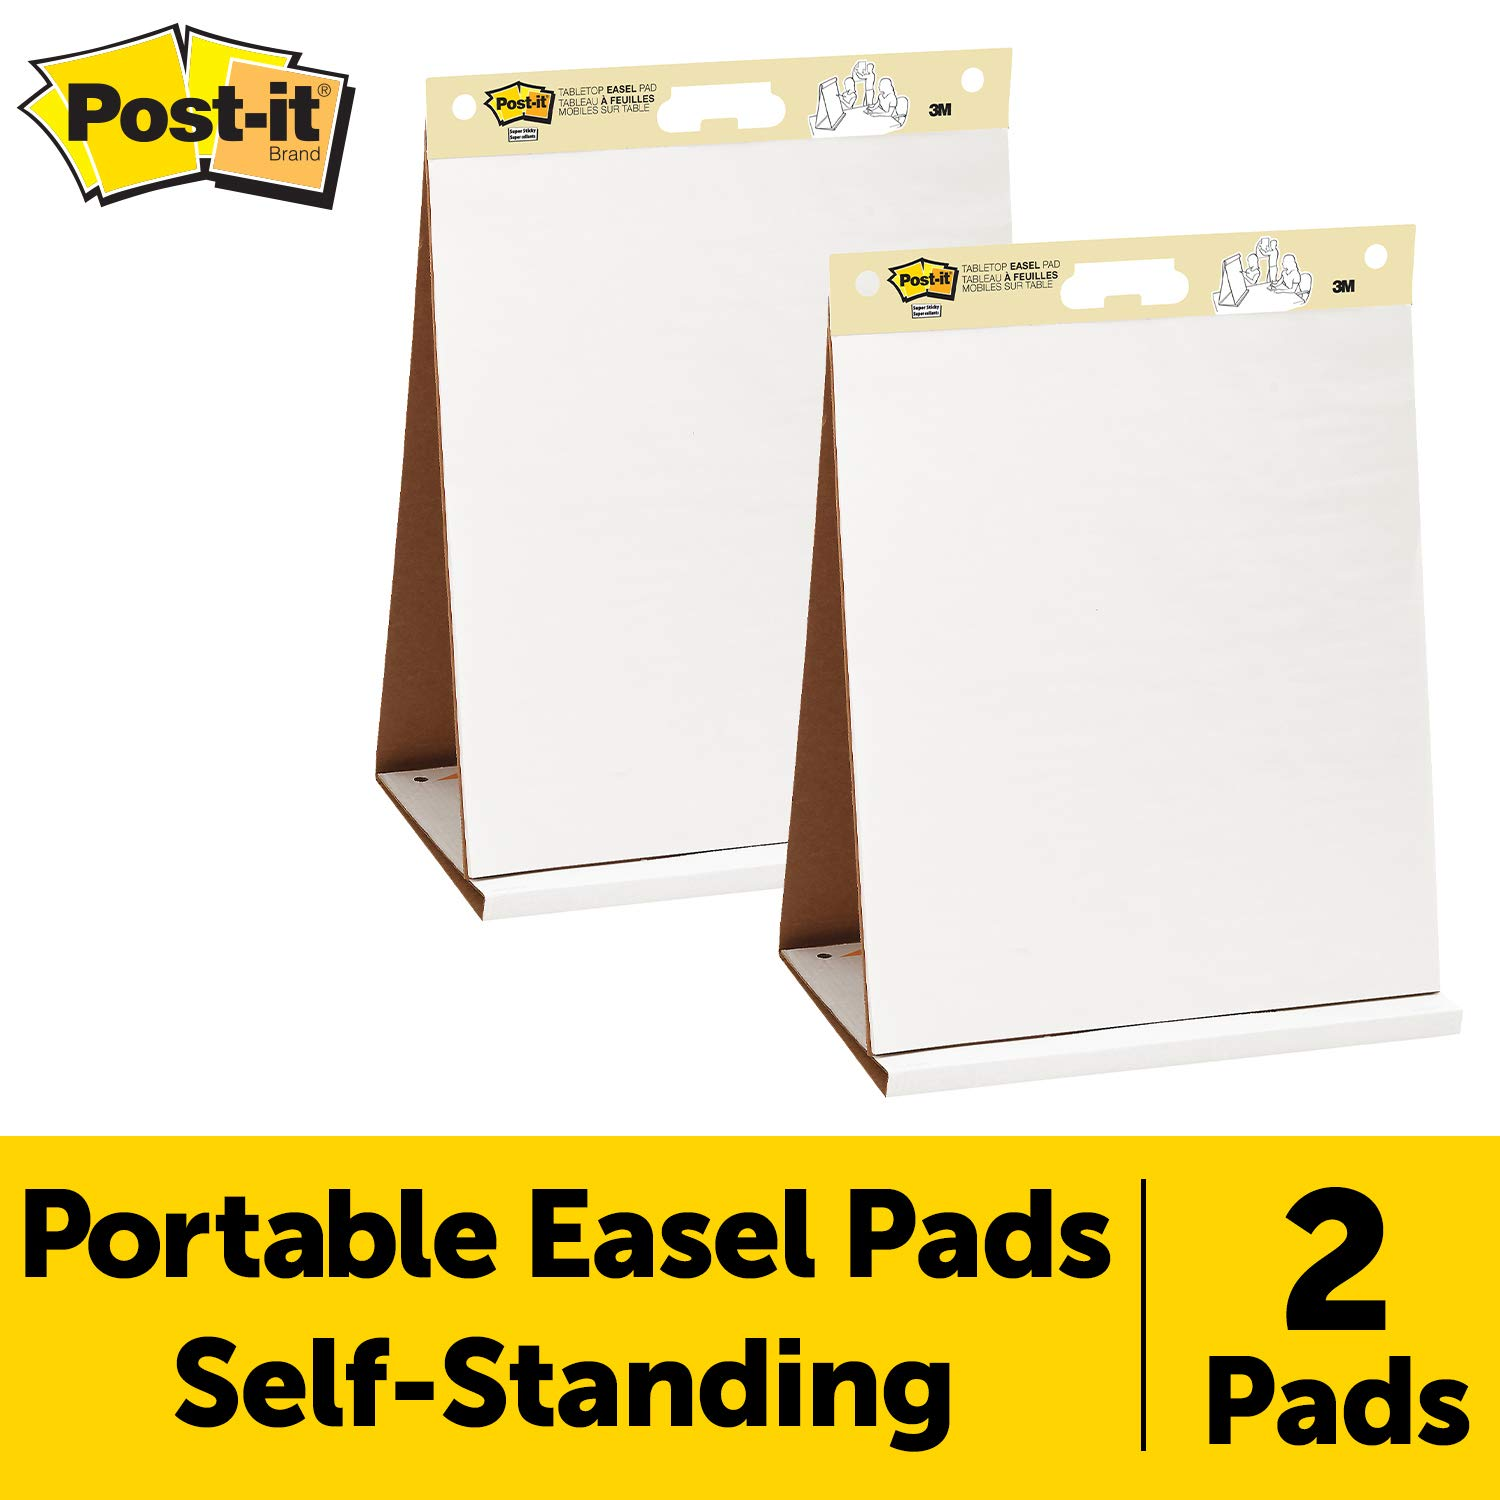 Post-it Super Sticky Portable Tabletop Easel Pad, 20x23 Inches, 20 Sheets/Pad, 2 Pads (563 VAD 2PK) by Post-it